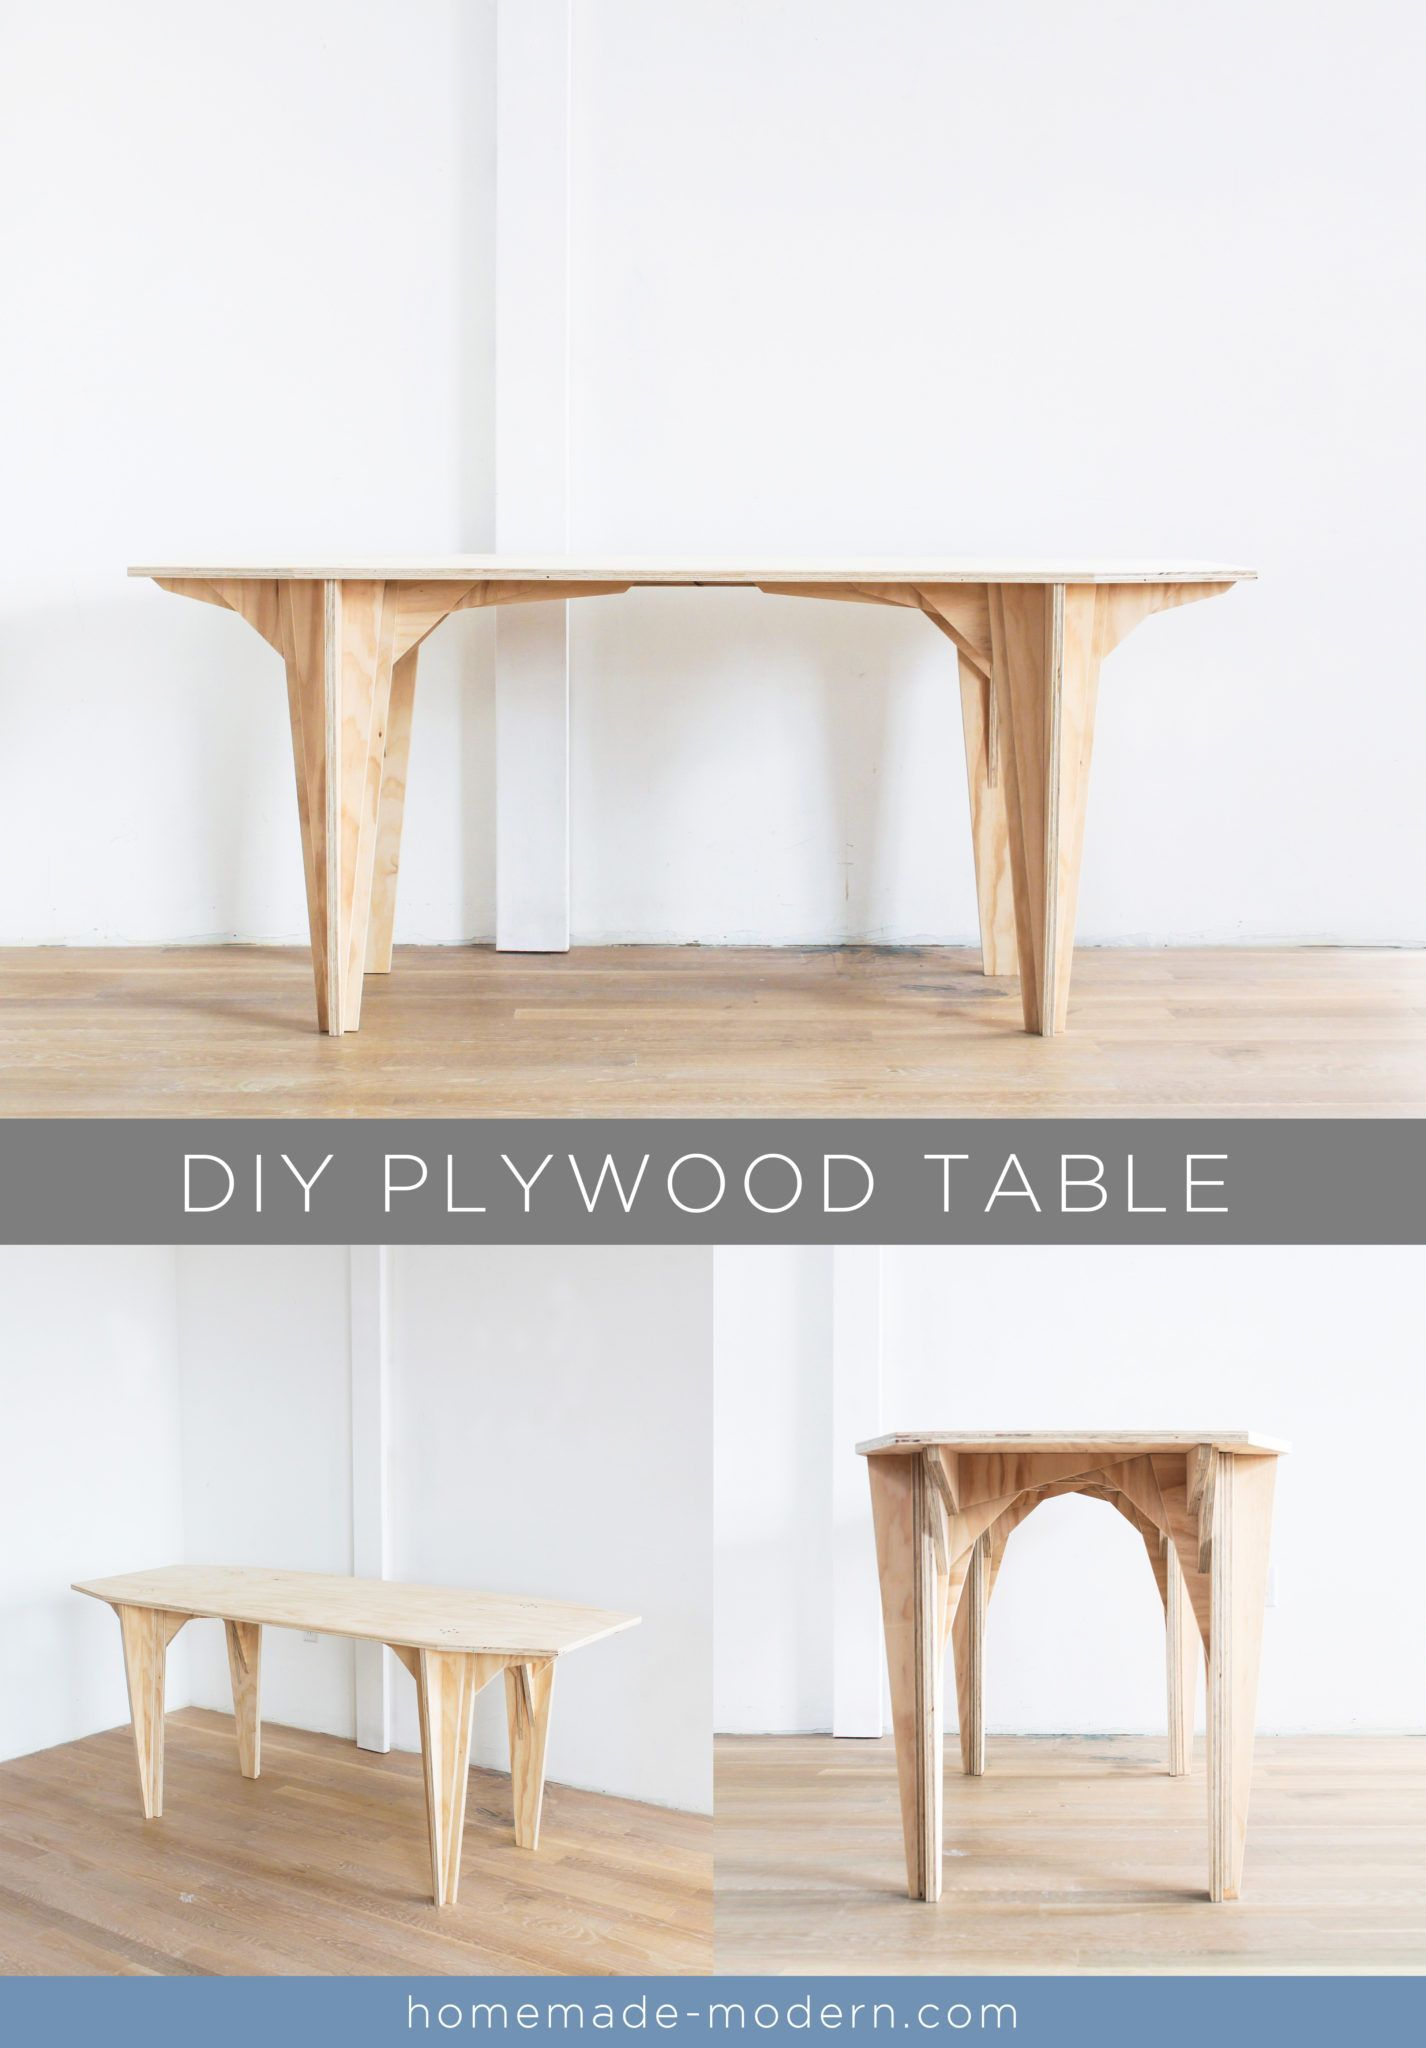 Homemade Modern Ep110 Plywood Table I Designed This Diy Plywood Table So That It Could Be Made Out Of A Single Sheet Plywood Table Cnc Furniture Furniture [ 2048 x 1426 Pixel ]